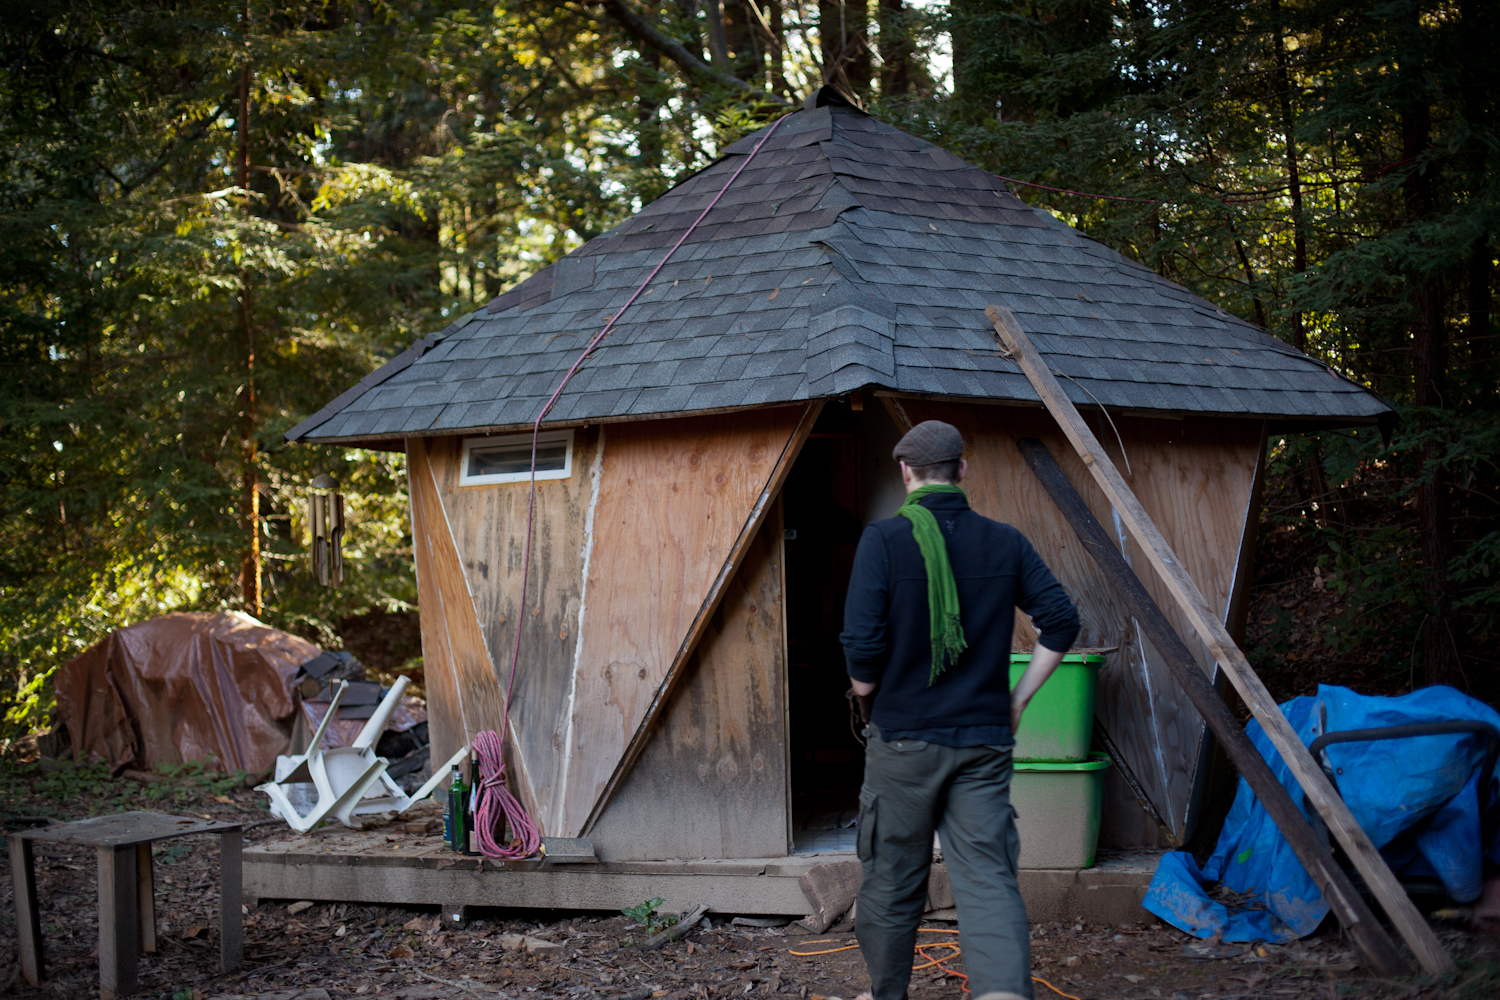 Every parent needs their own space. This is Colin's star jointed annex that he built himself